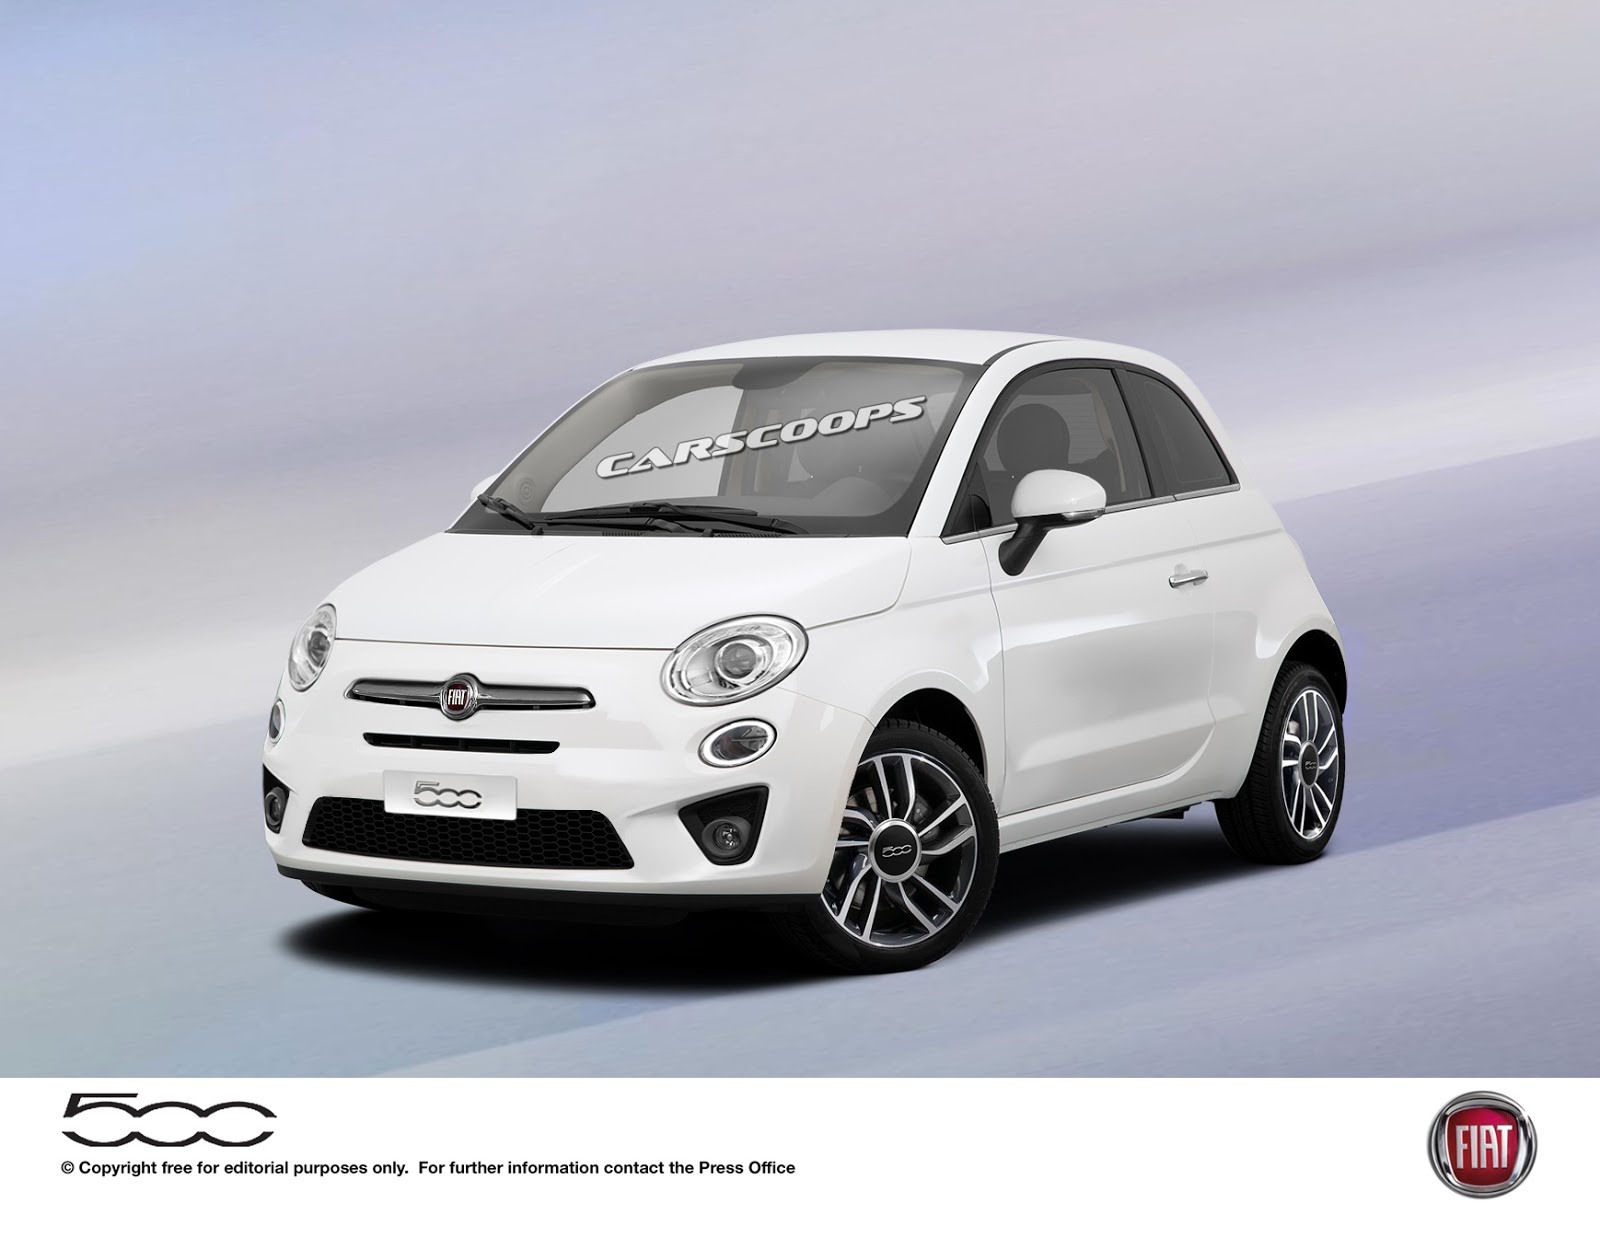 2016 fiat 500 facelift leaks ahead of ny auto show debut today. Black Bedroom Furniture Sets. Home Design Ideas